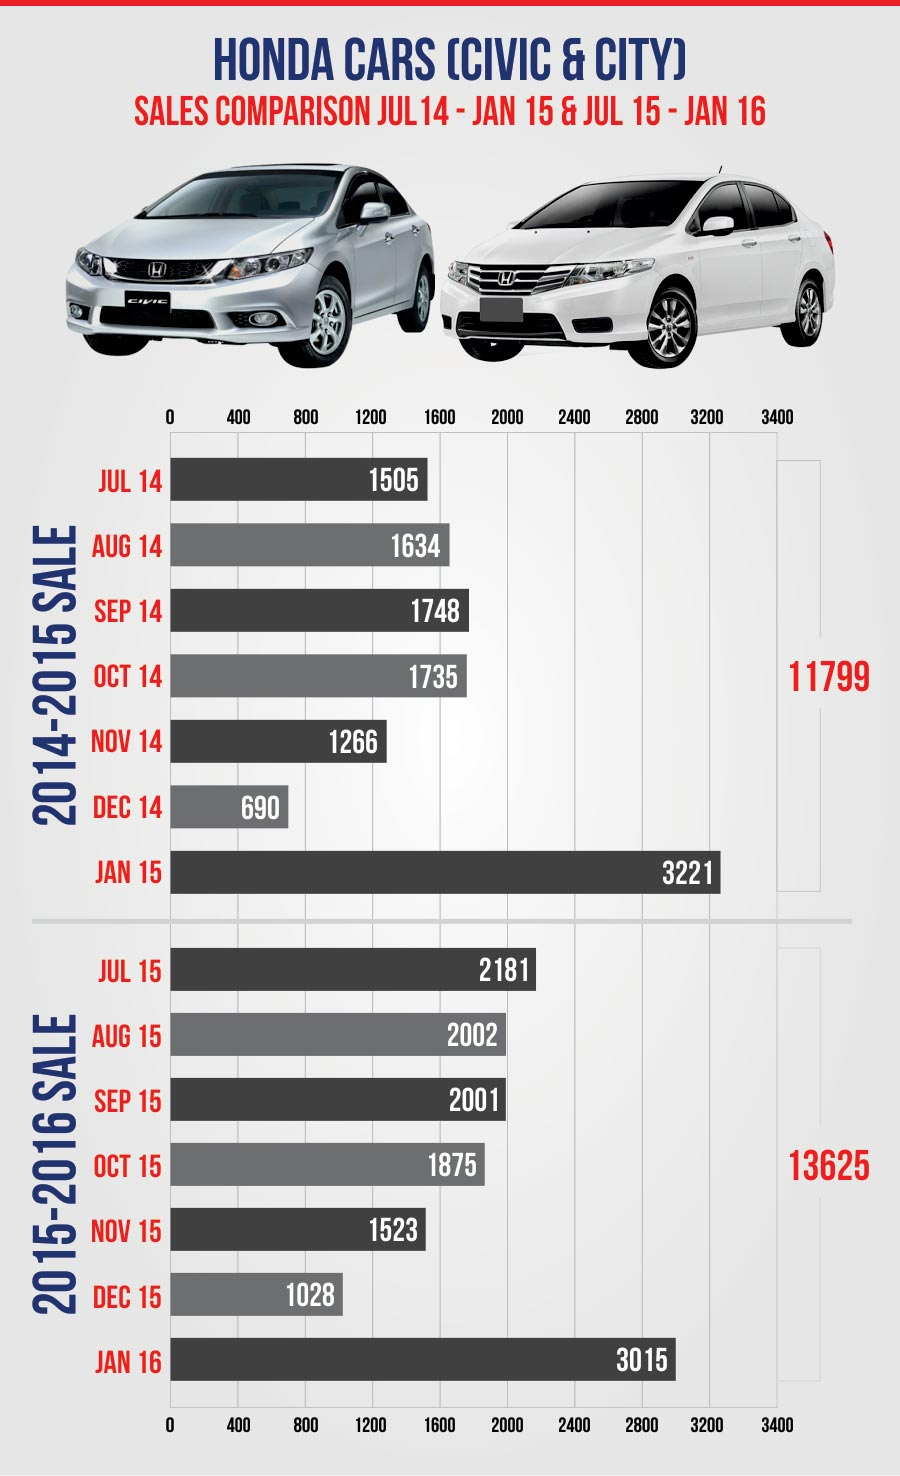 Honda Pakistan Cars Sales